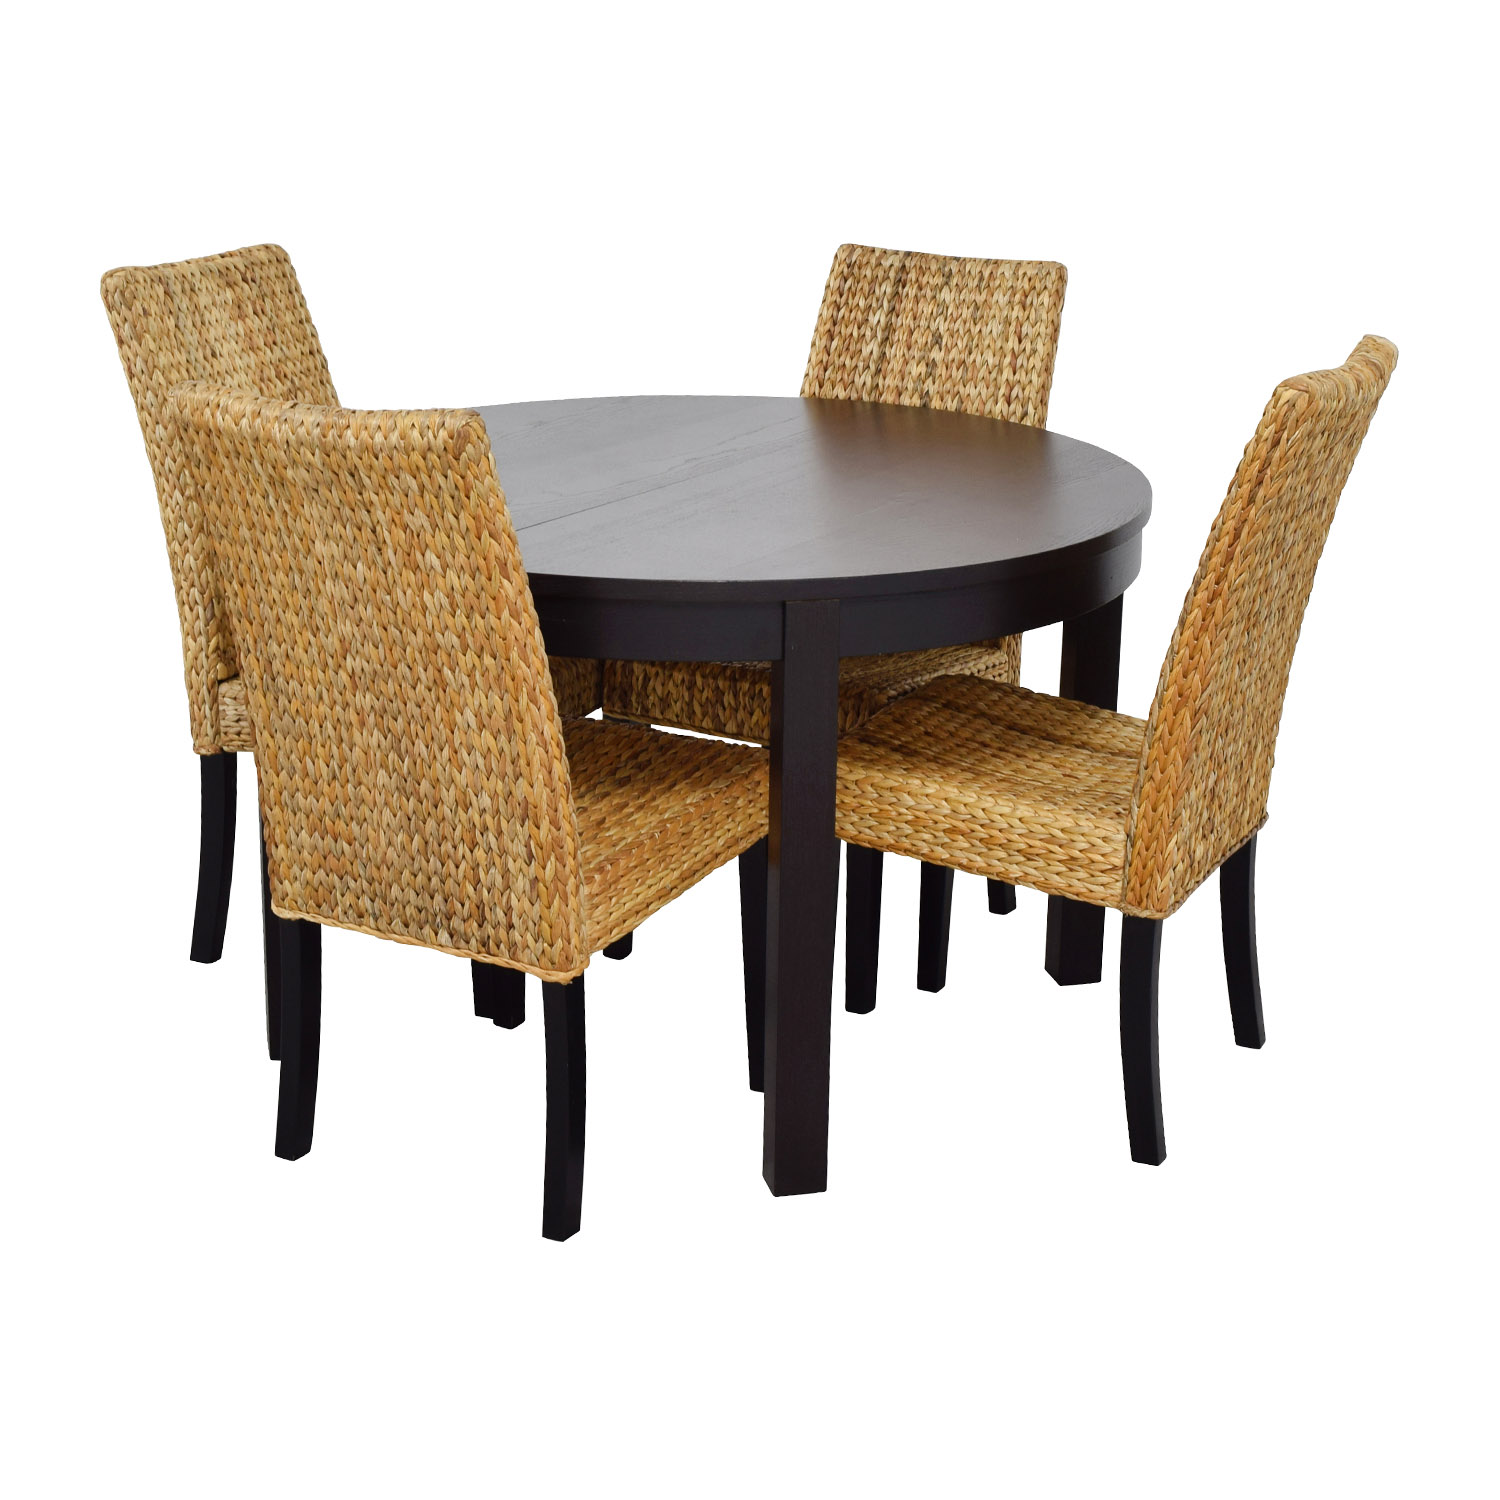 Unique Dining Table Set Macys Light of Dining Room : second hand round black dining table set with four chairs from www.lightofdiningroom.com size 1500 x 1500 jpeg 283kB